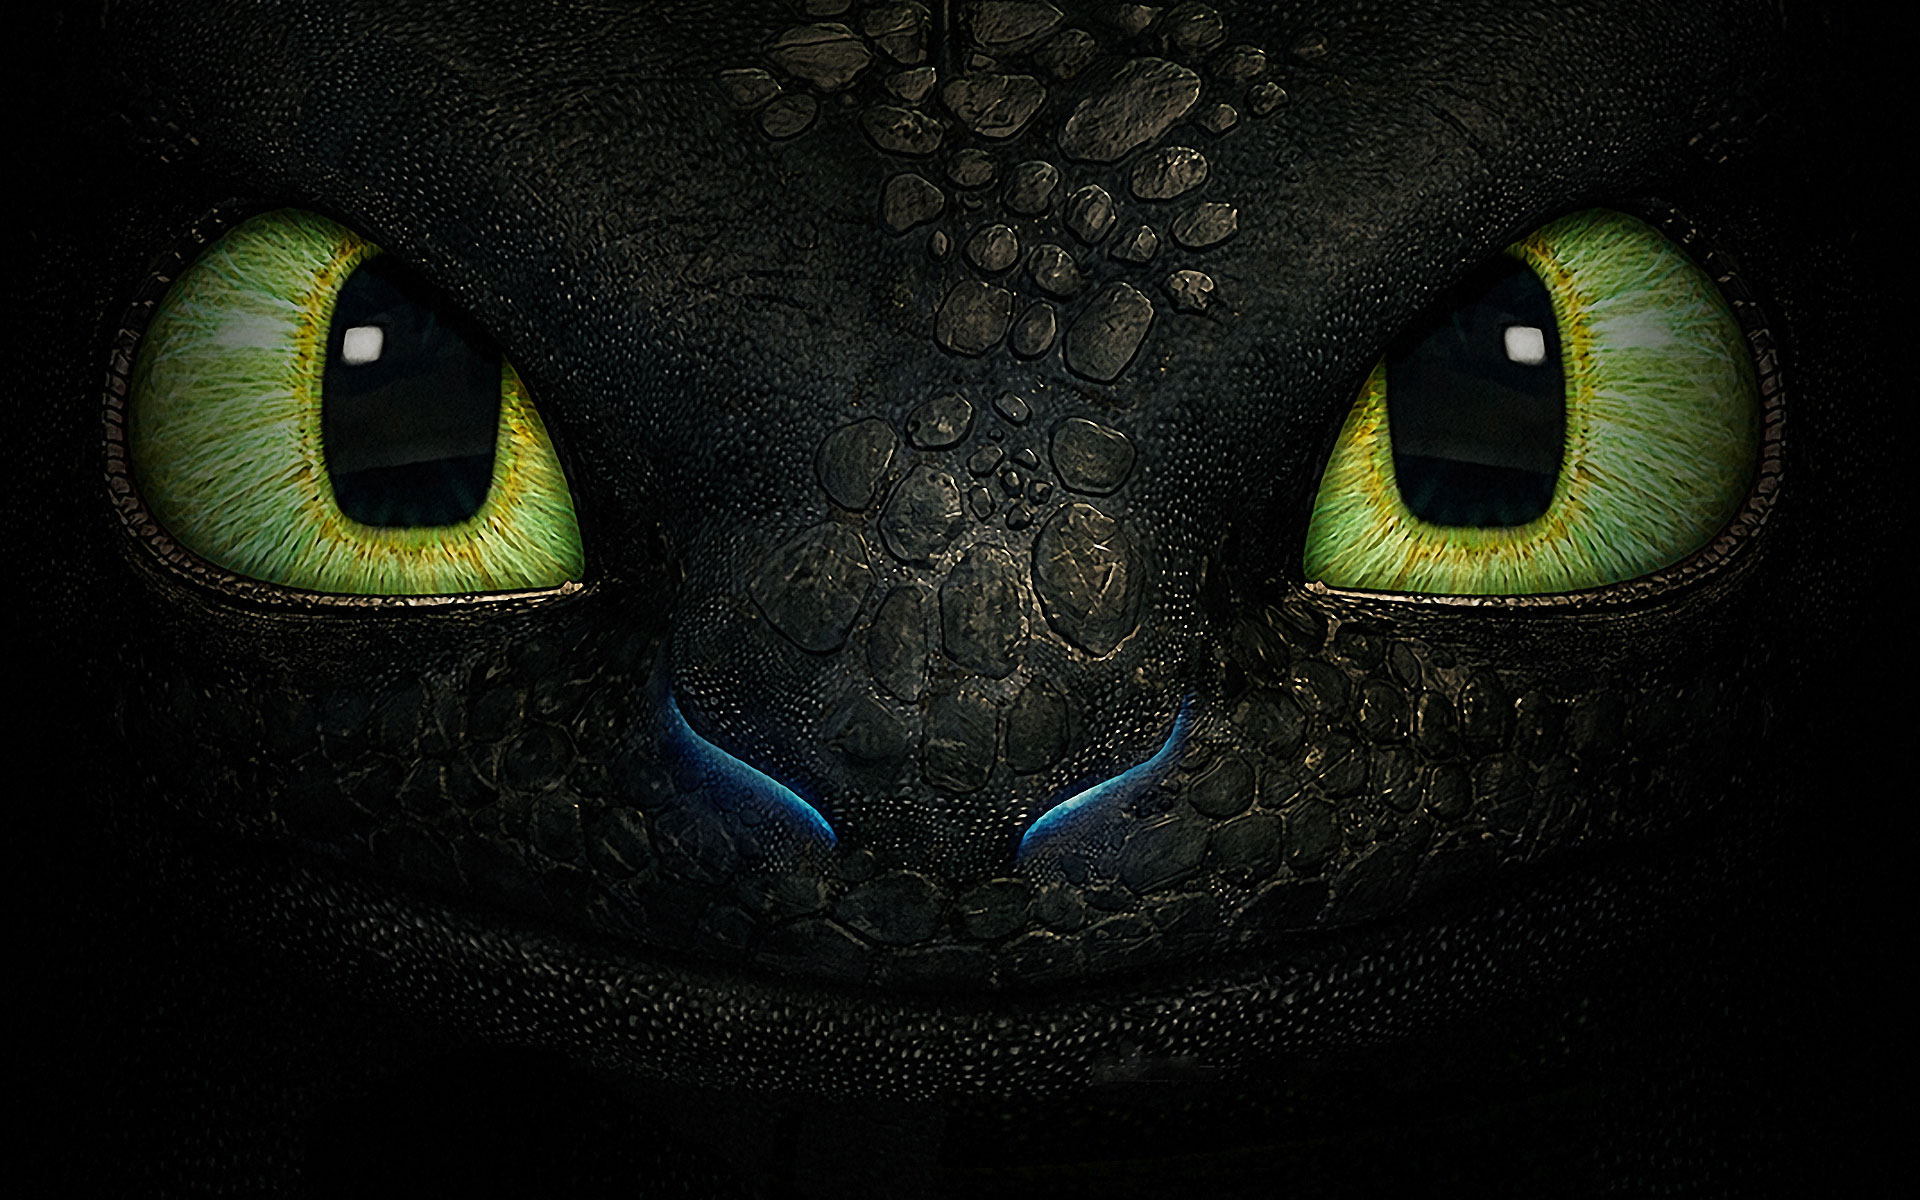 how-to-train-your-dragon-toothless-wallpaper-hd | wallpaper.wiki